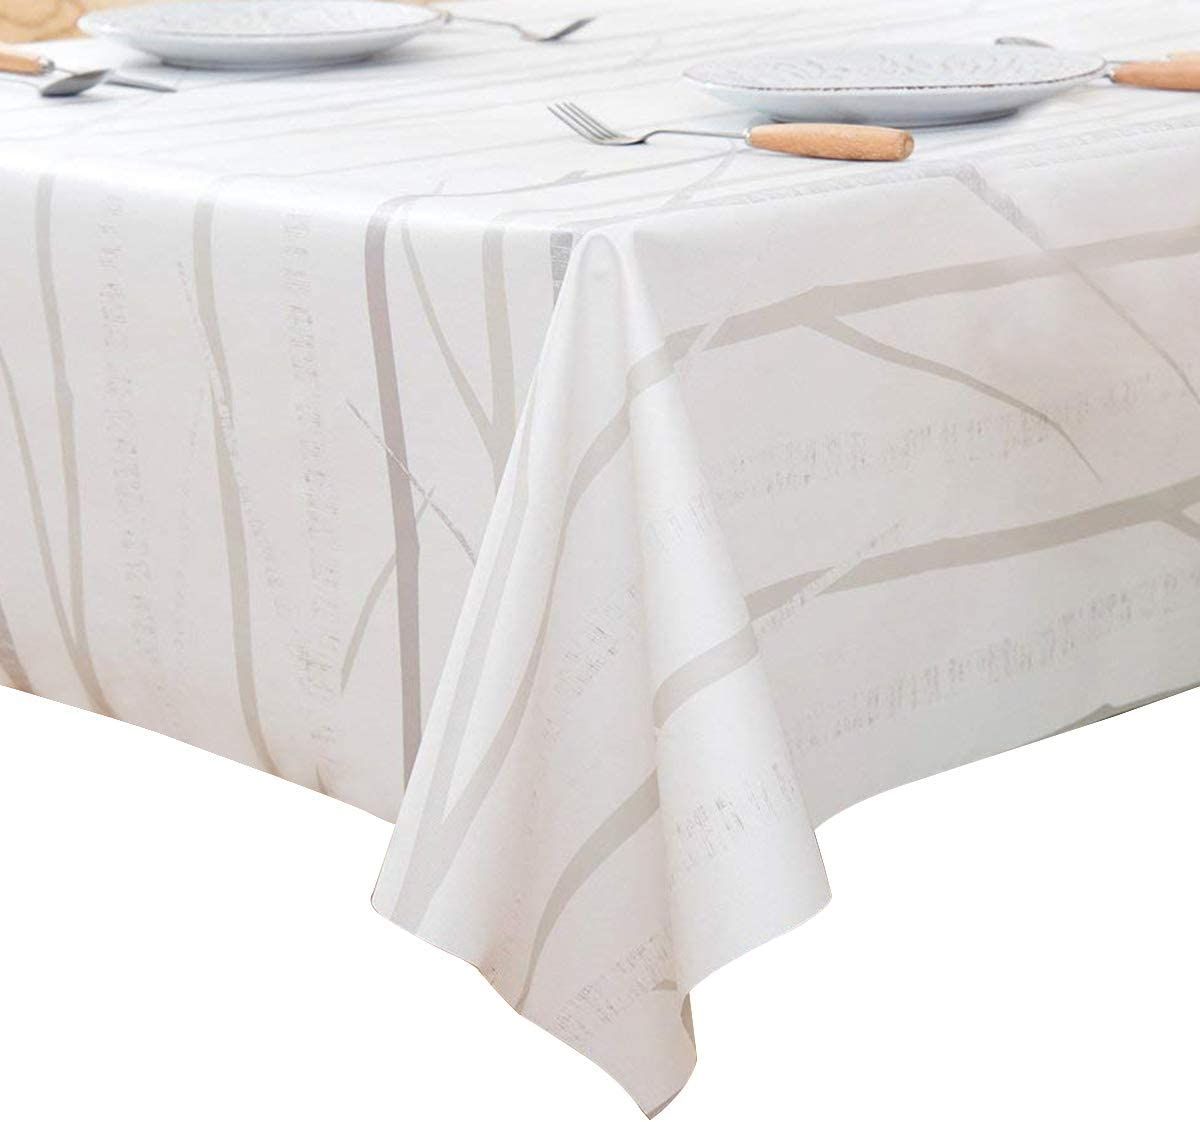 Check,137 * 137cm Kandor Heavy Weight Vinyl Dinning Table Cloth for Rectangle Table Wipe Clean PVC Tablecloth Oil-Proof Waterproof Stain-Resistant